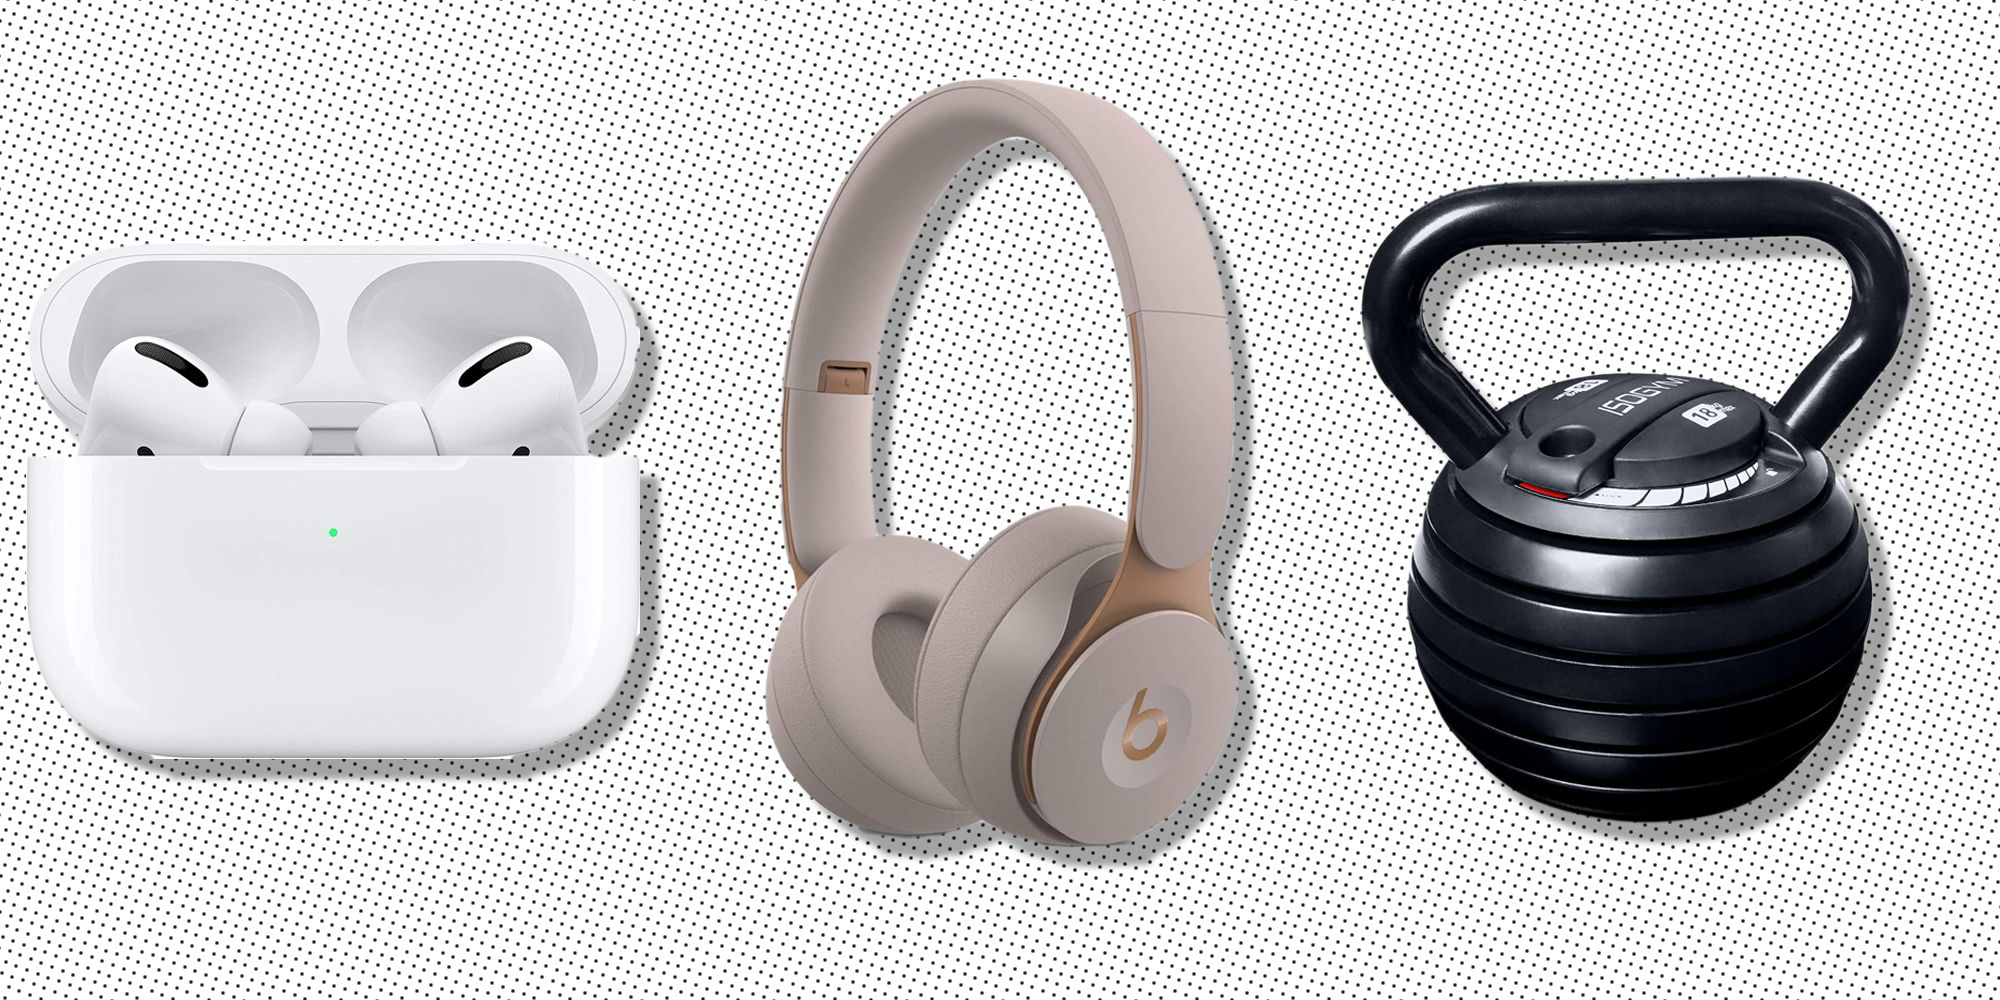 Black Friday Fitness Deals 2020: Best Tech, Sportswear And Products To Buy